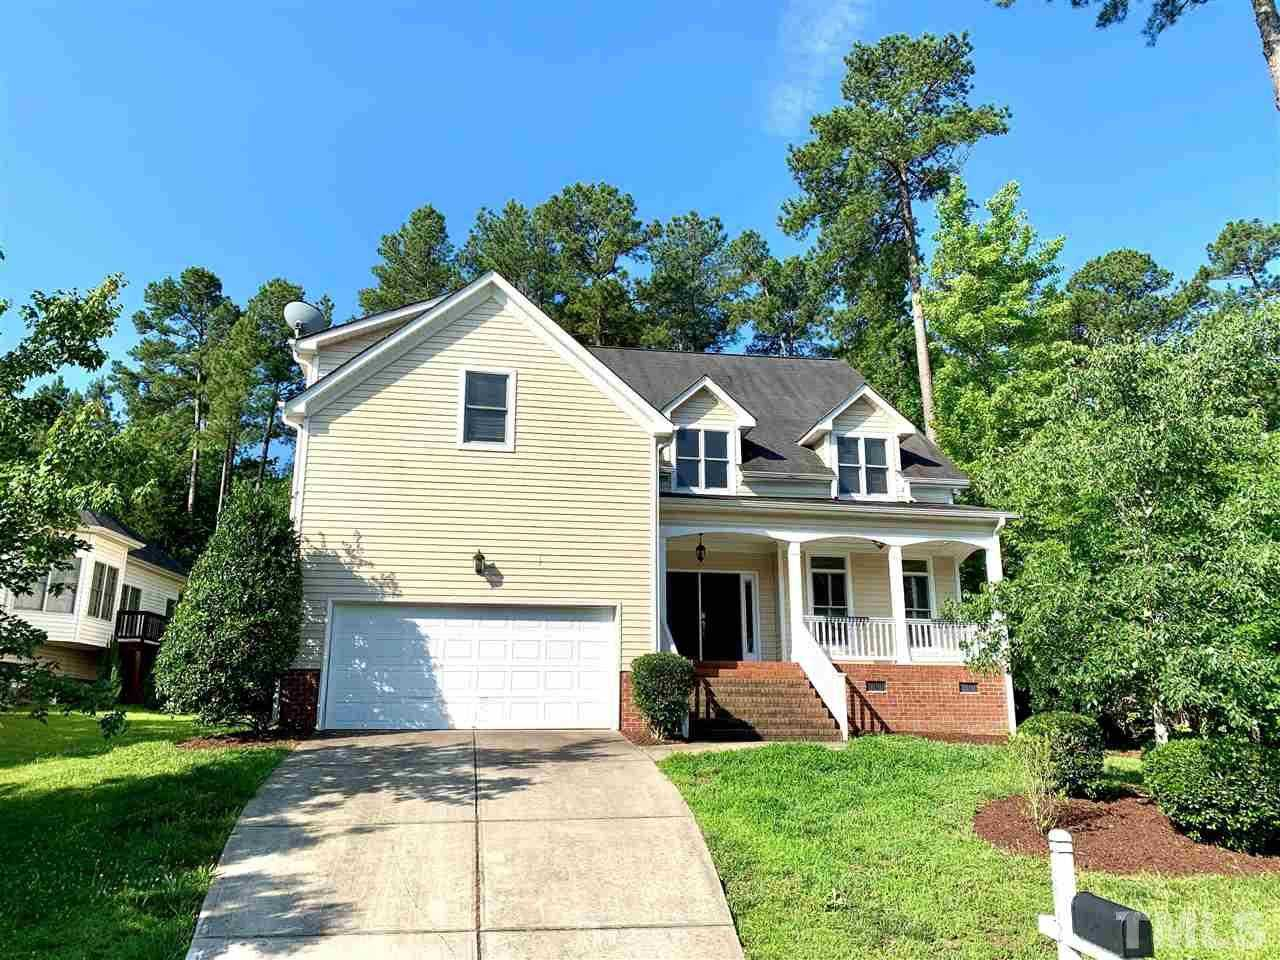 $2,595 - 5Br/4Ba -  for Sale in Fairfield, Durham